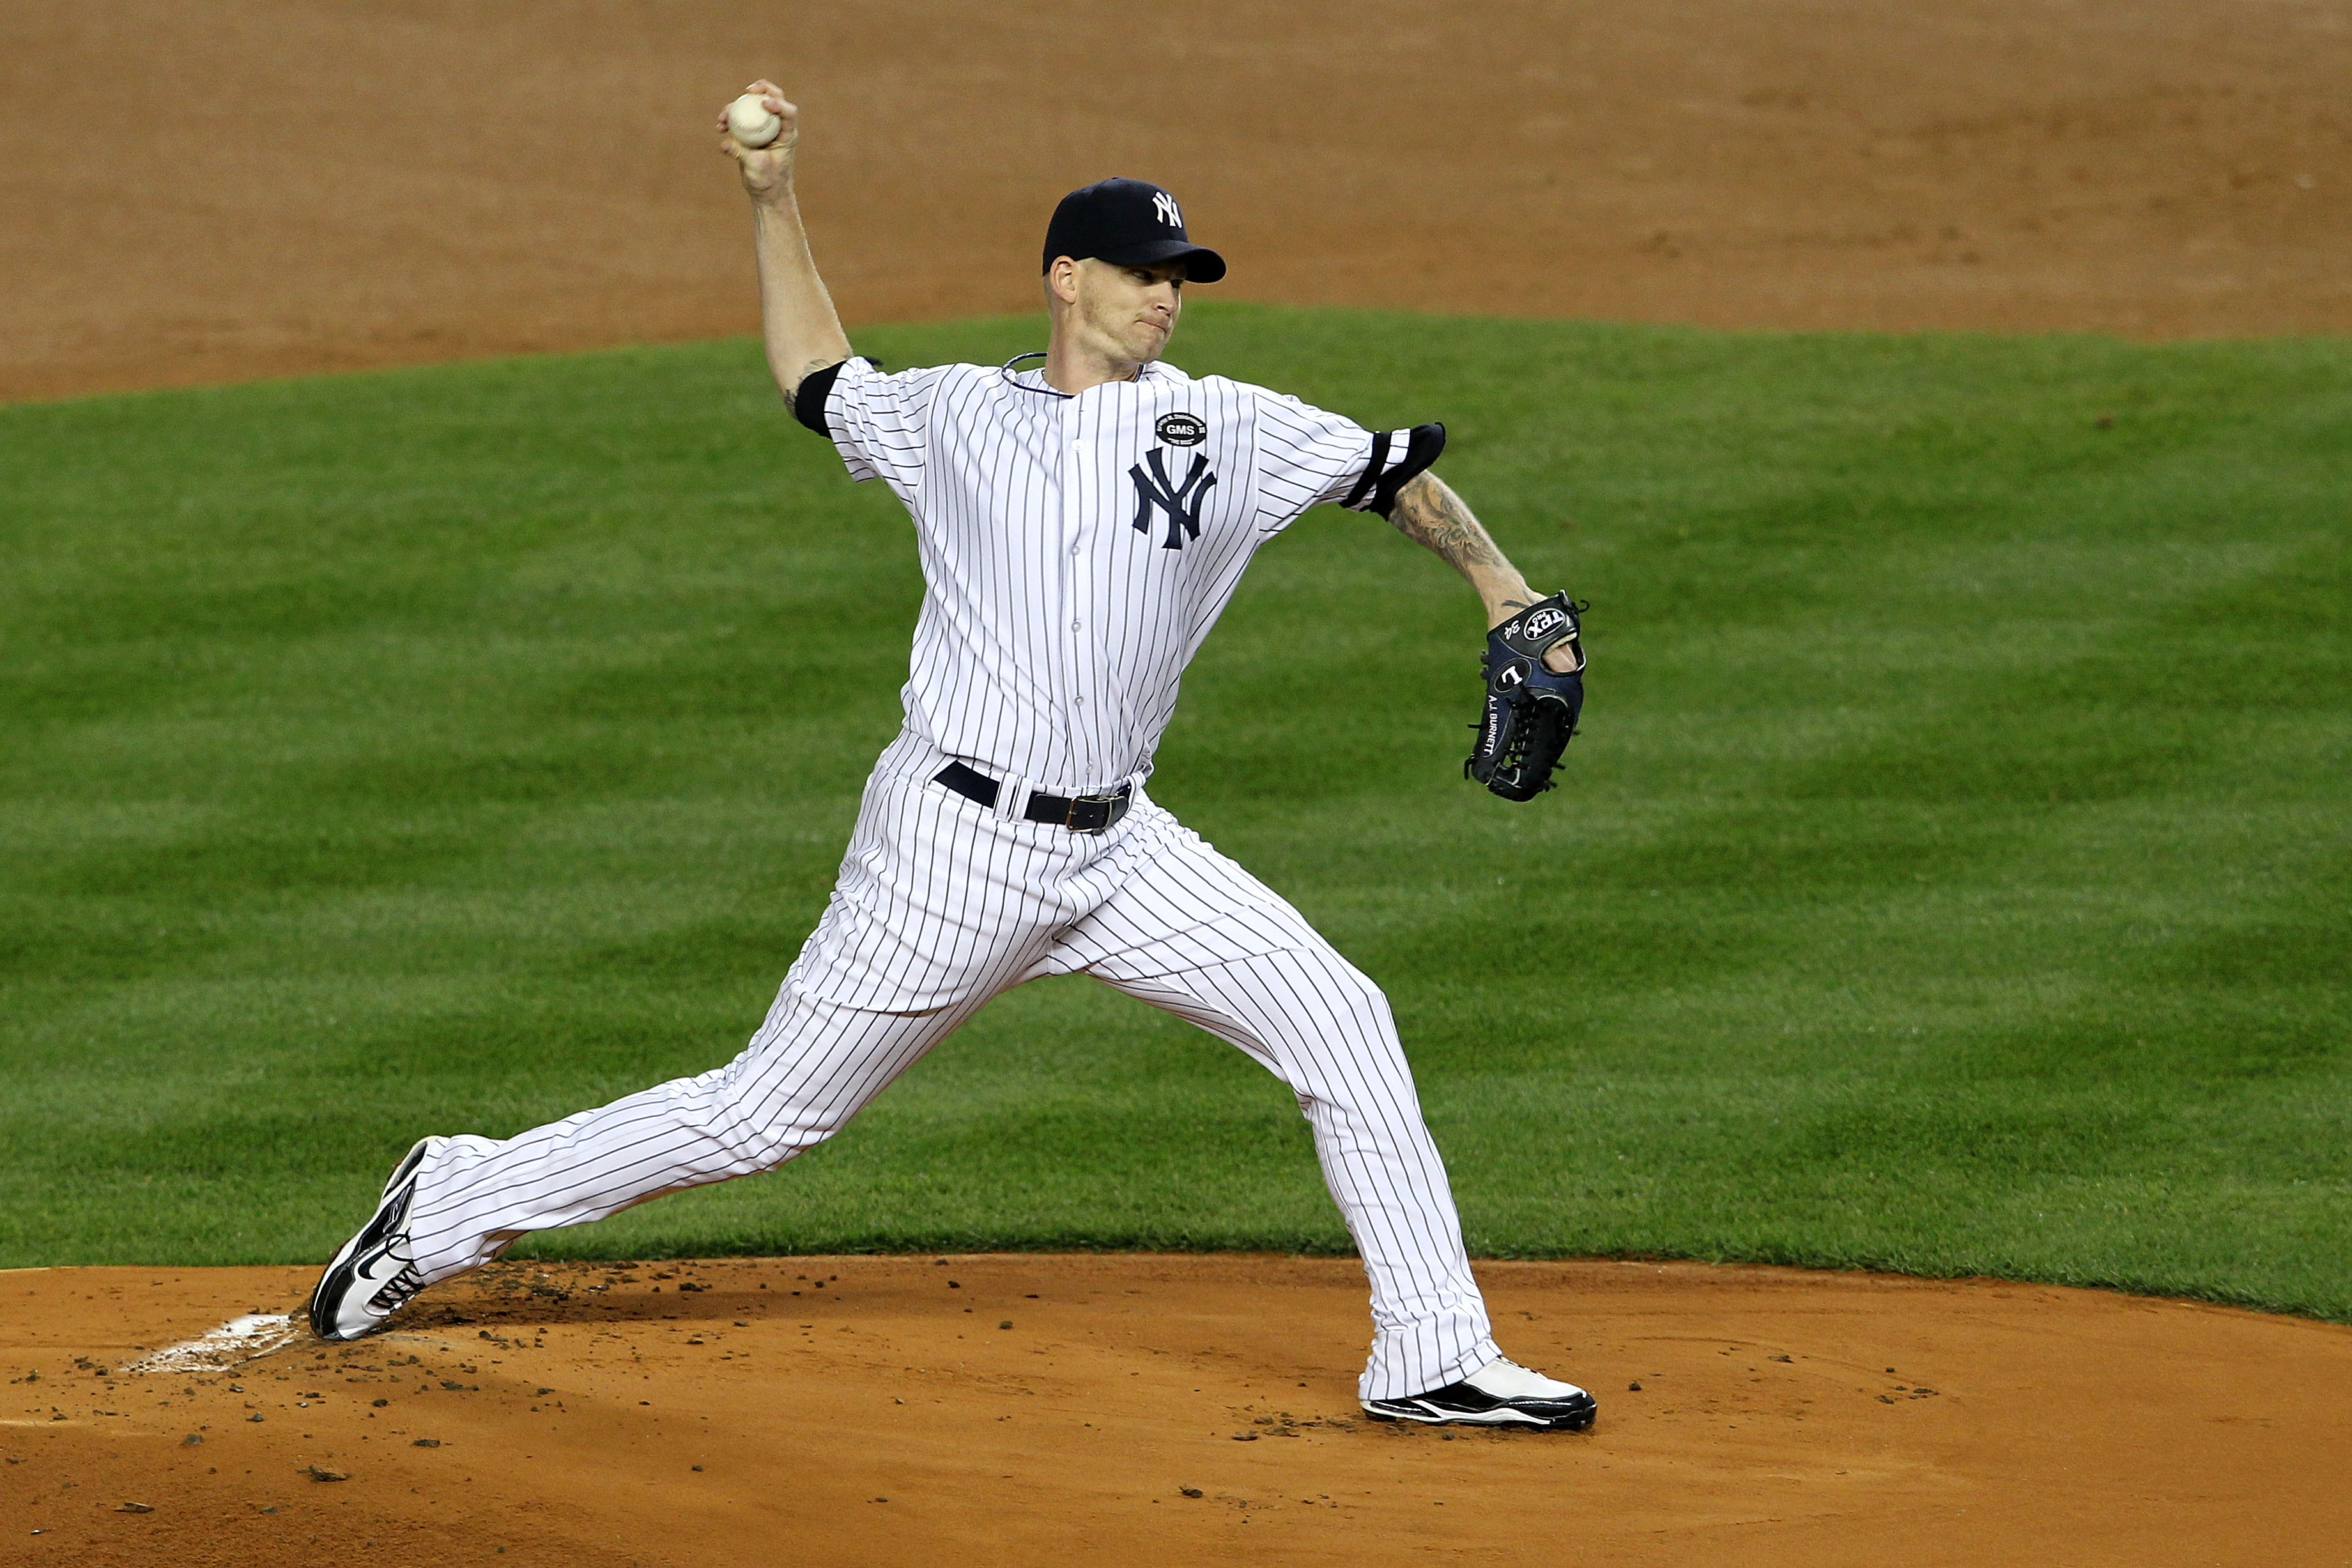 NEW YORK - OCTOBER 19:  A.J. Burnett #34 of the New York Yankees pitches against the Texas Rangers in Game Four of the ALCS during the 2010 MLB Playoffs at Yankee Stadium on October 19, 2010 in the Bronx borough of New York City. The Rangers won 10-3.  (P